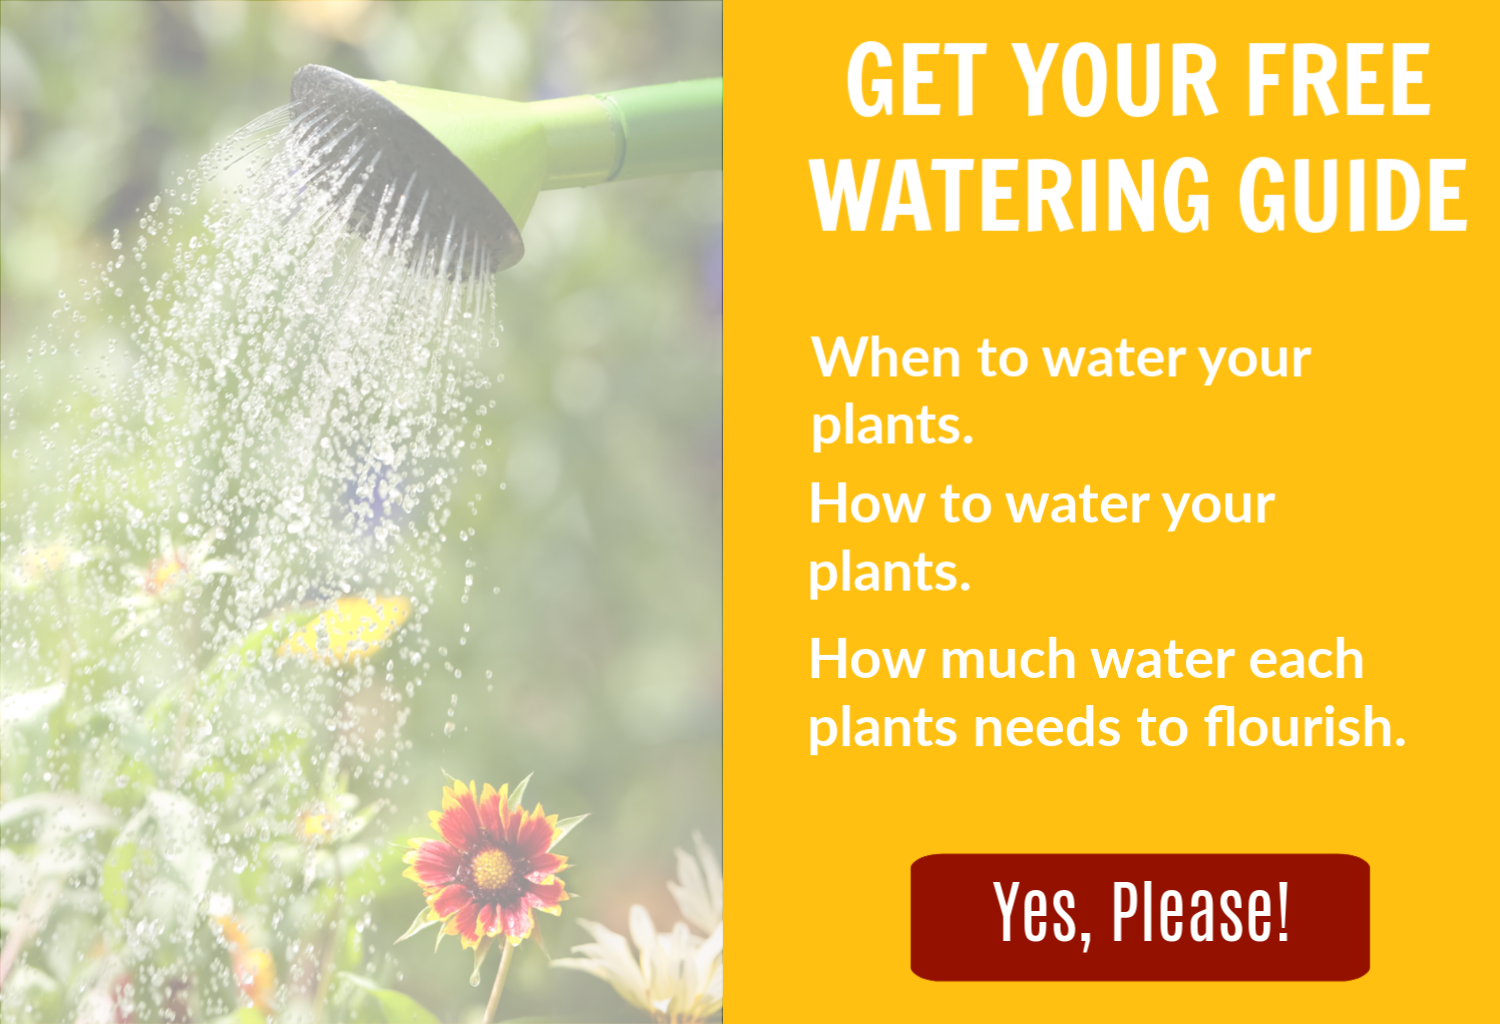 Get your free Watering Guide by clicking here